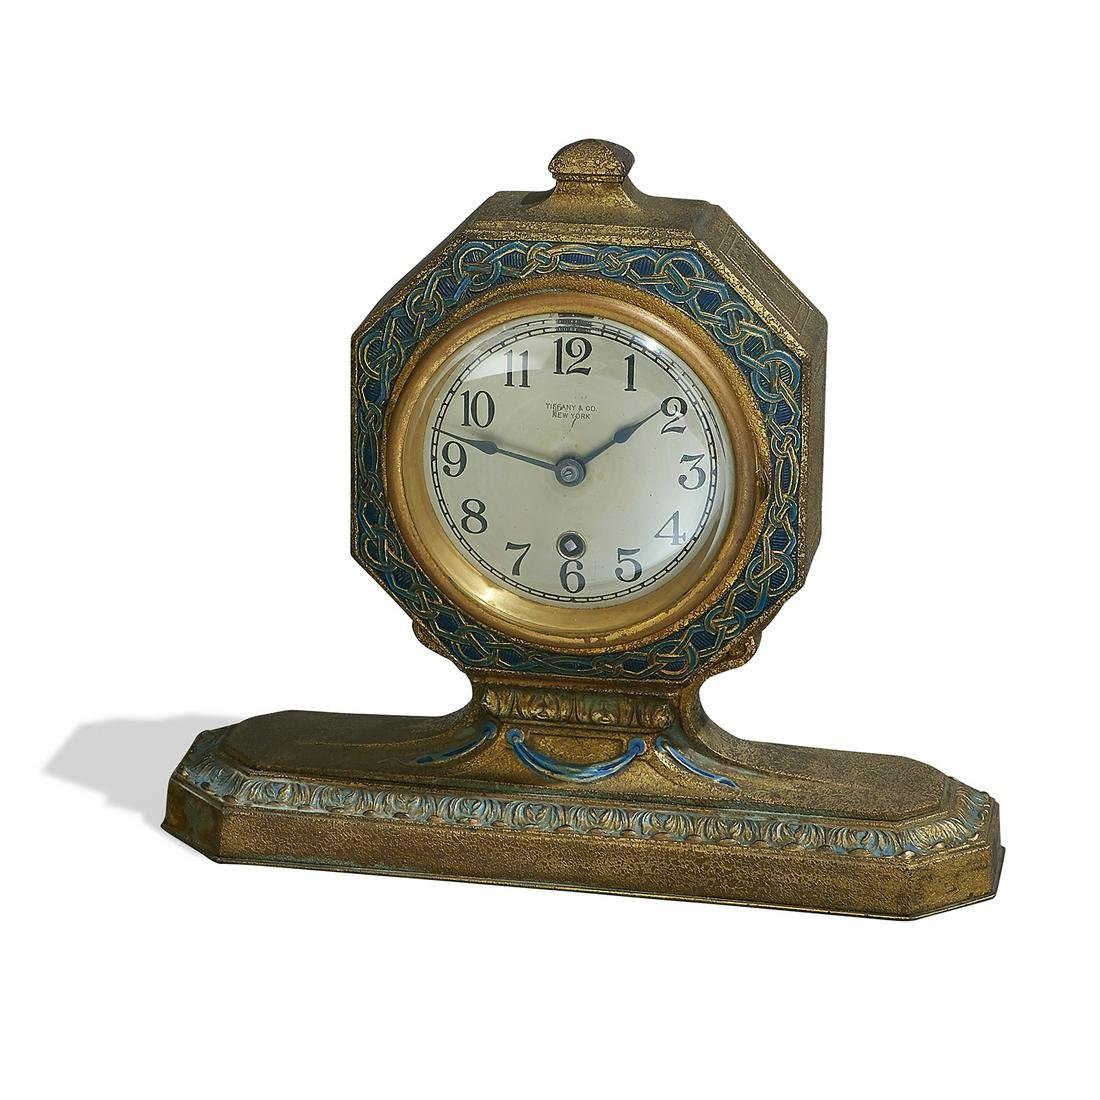 Tiffany Studios desk clock, #1870